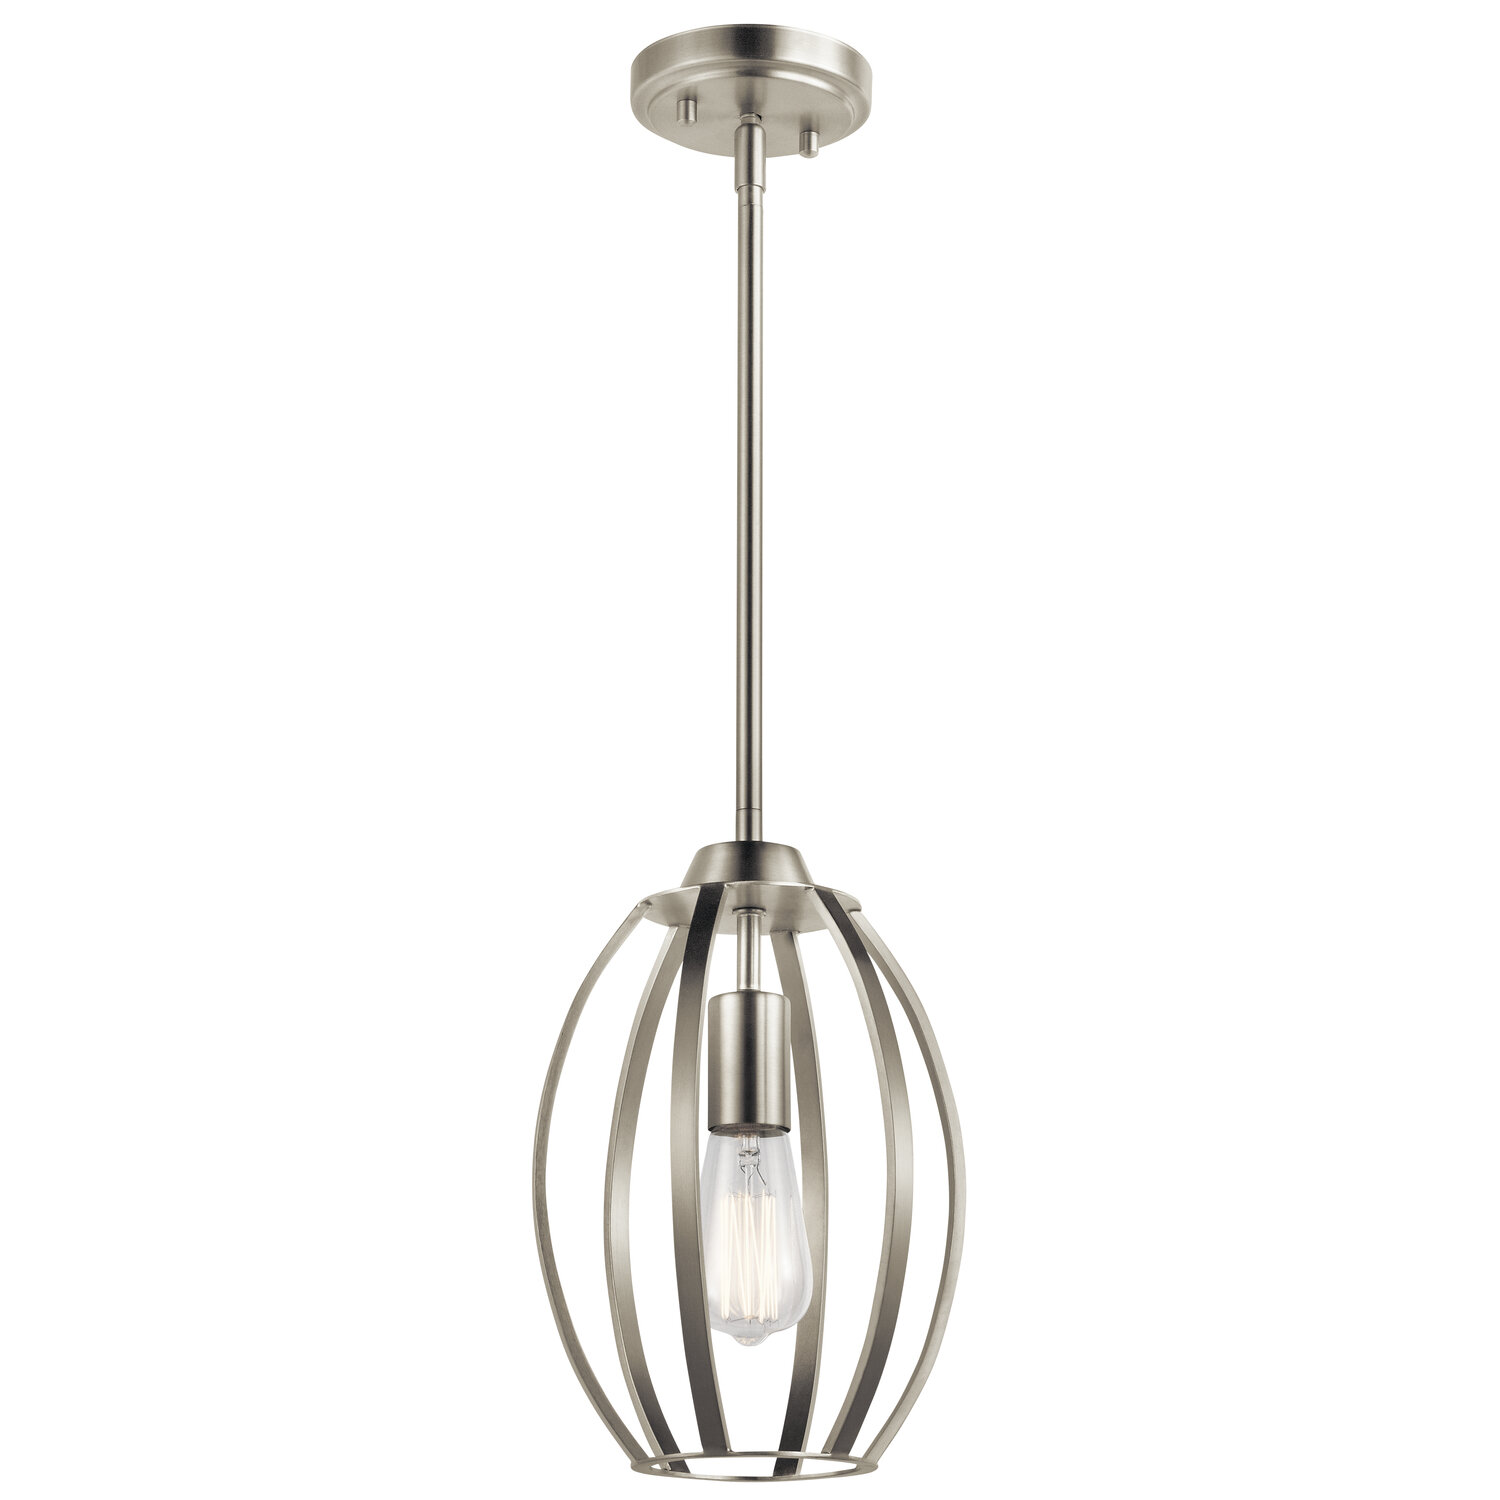 Brushed Nickel Geometric Pendant Lighting You Ll Love In 2021 Wayfair